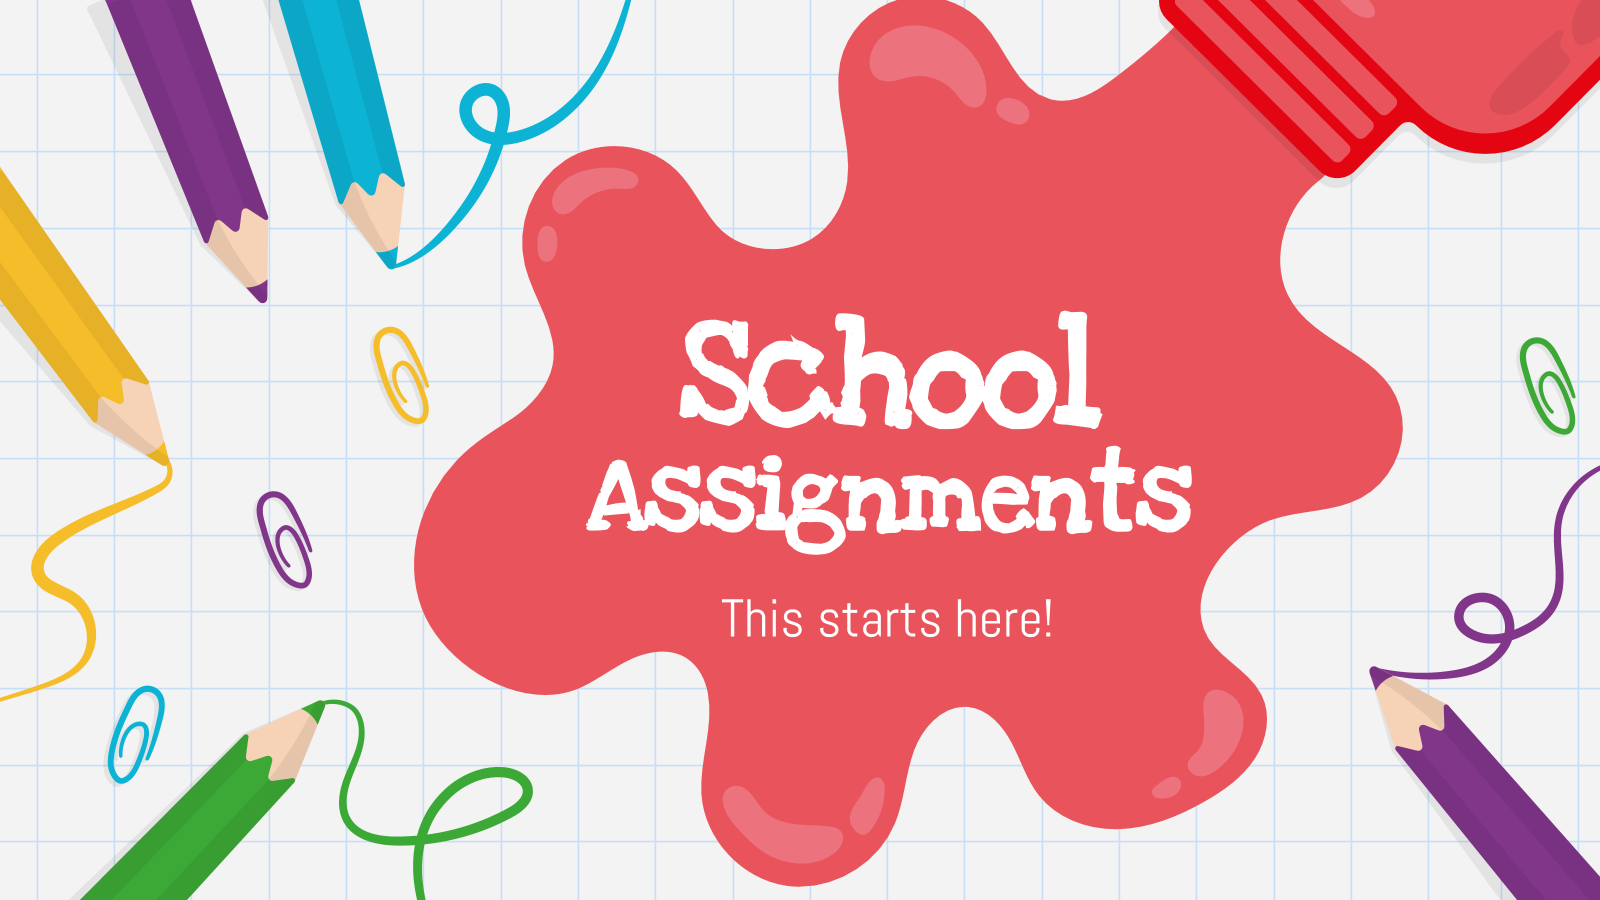 School Assignments presentation template